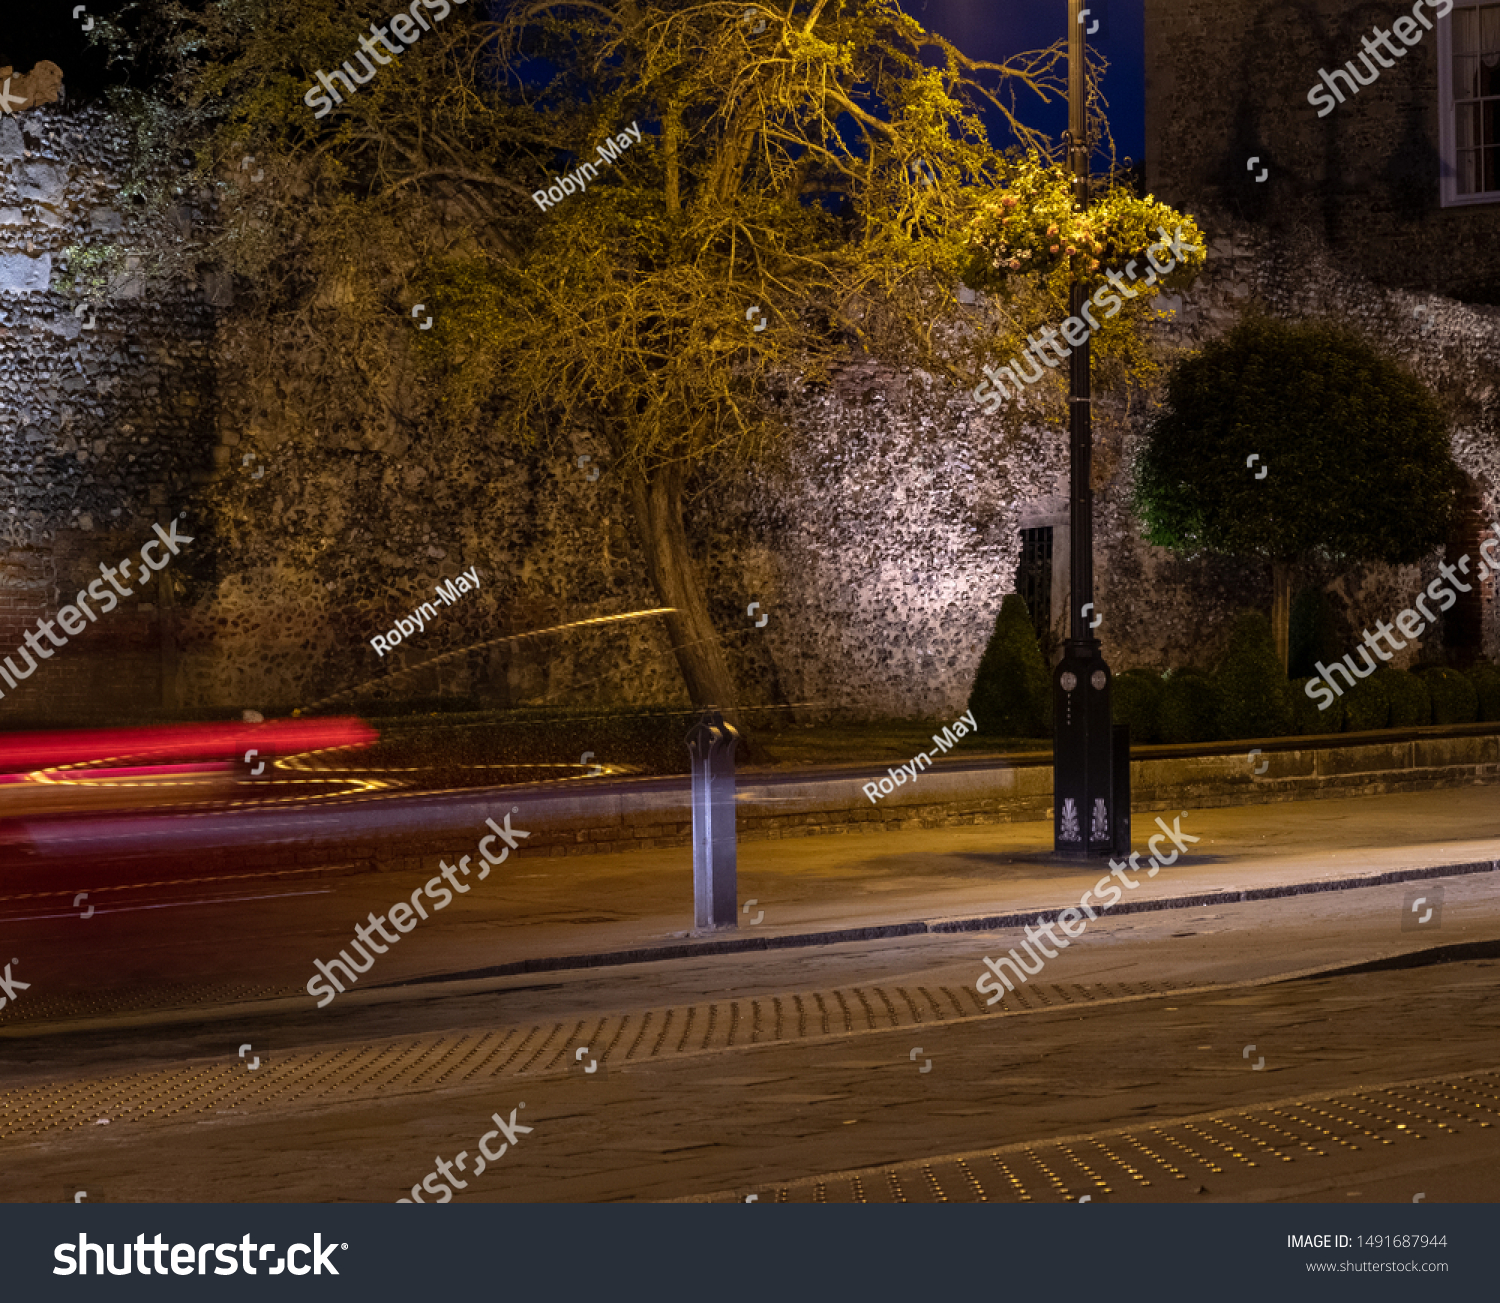 Nighttime Photography City Streets Old Buildings Stock Photo Edit Now 1491687944